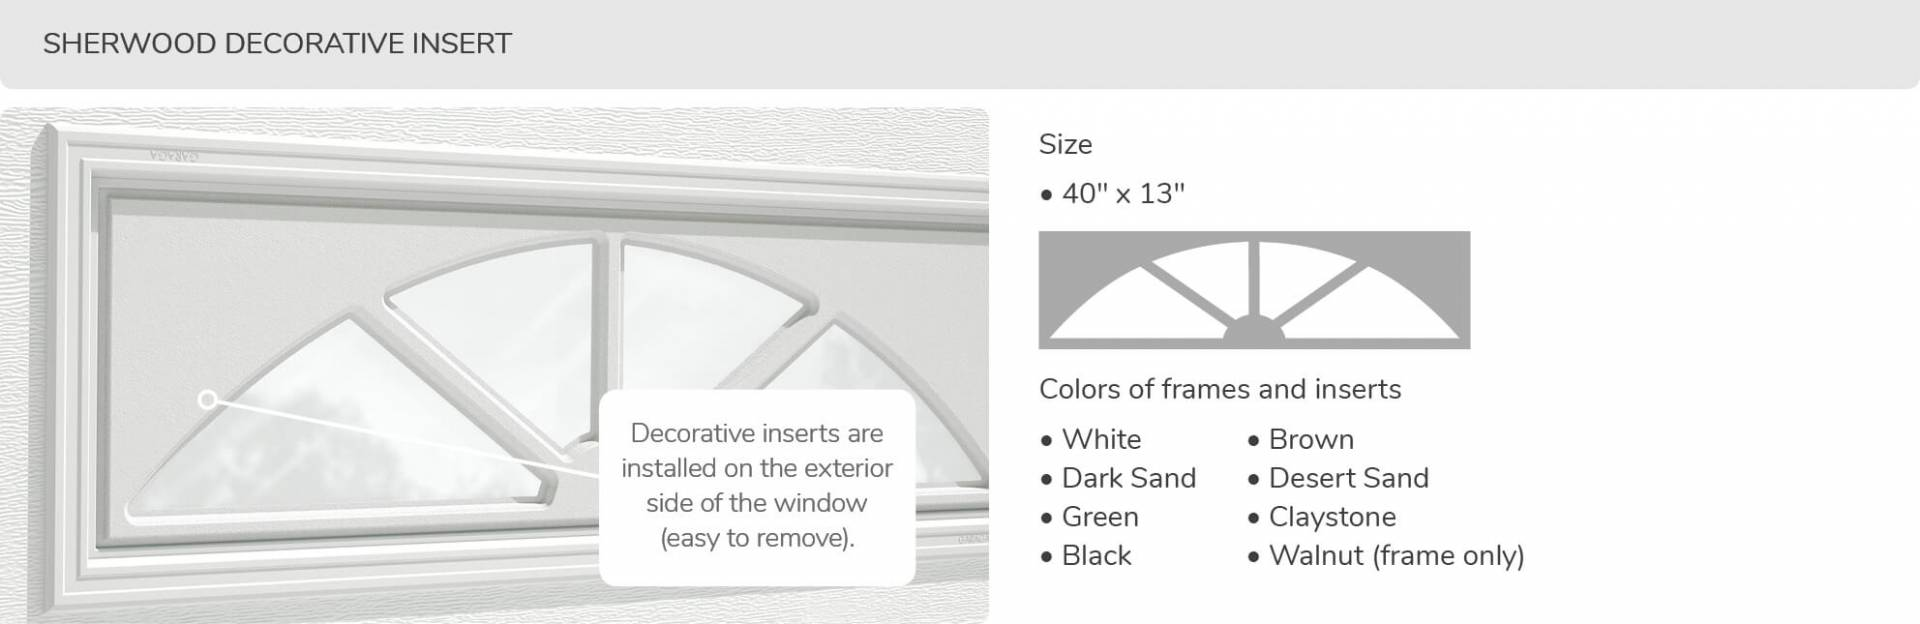 Sherwood Decorative Insert, 40' x 13', available for door R-16